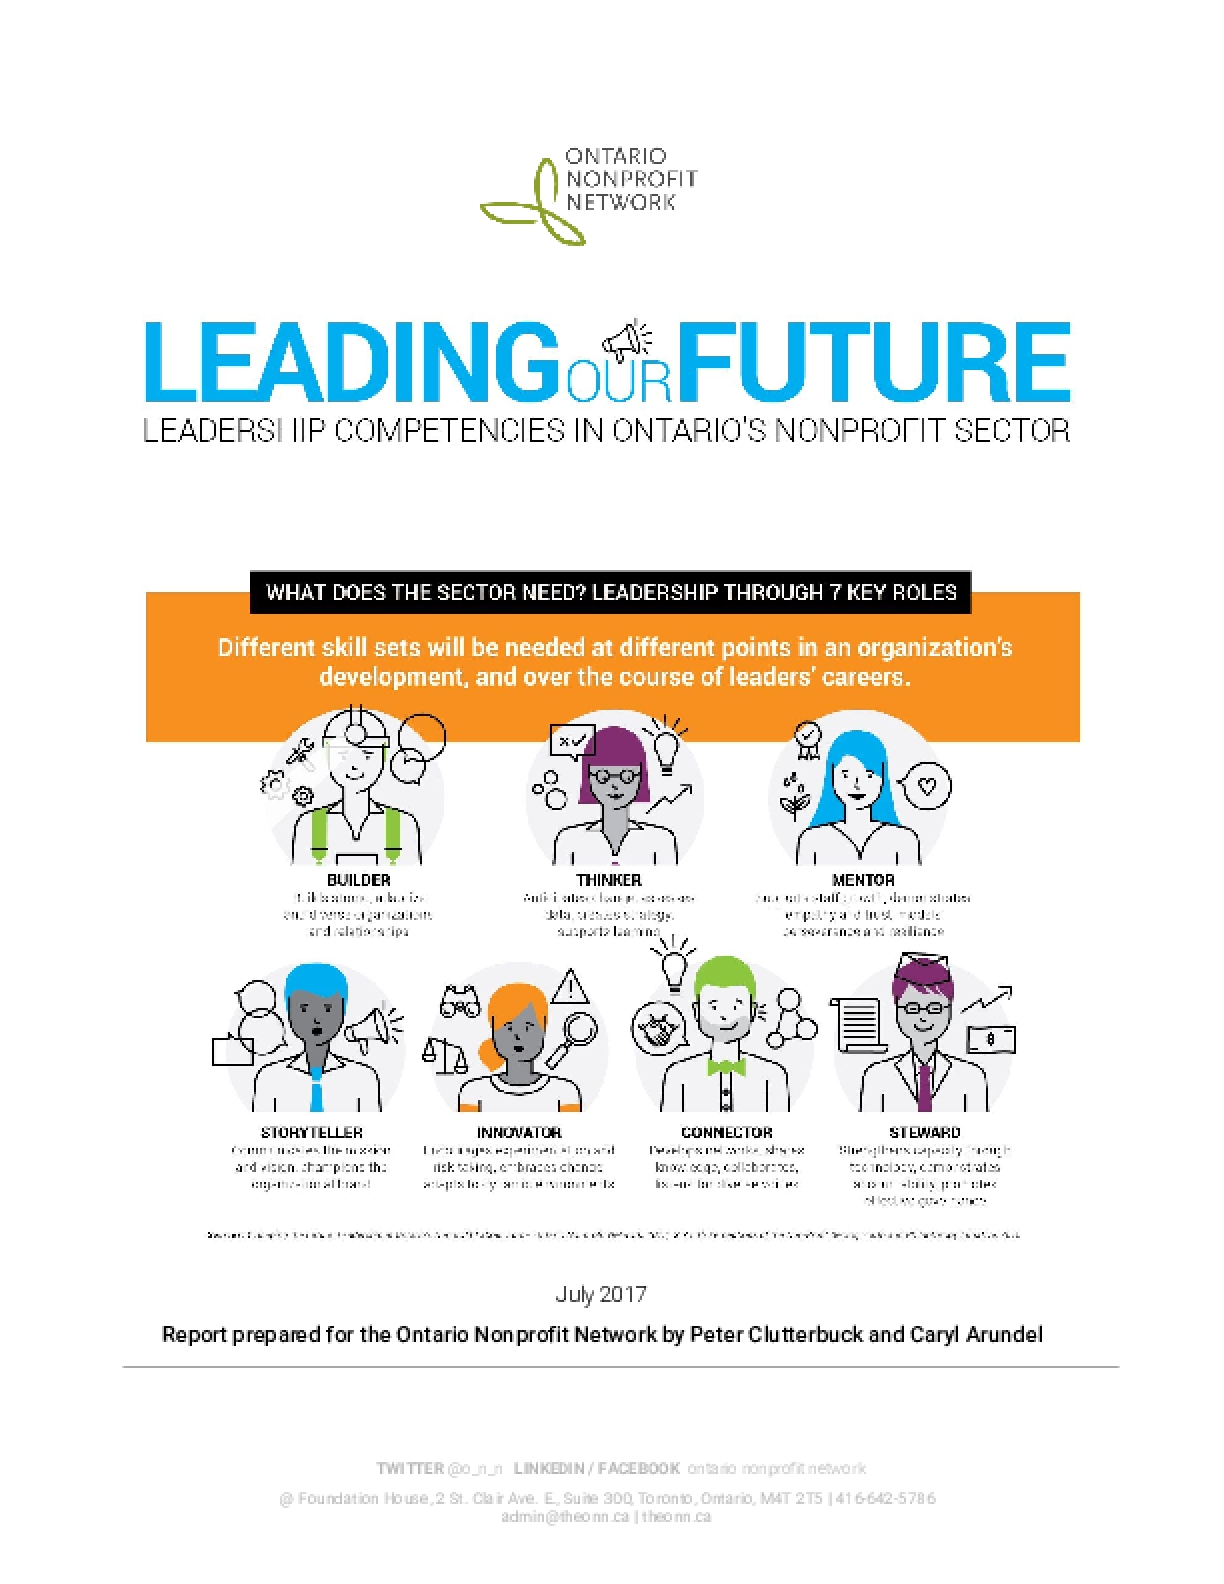 Leading Our Future: Leadership Competencies in Ontario's Nonprofit Sector